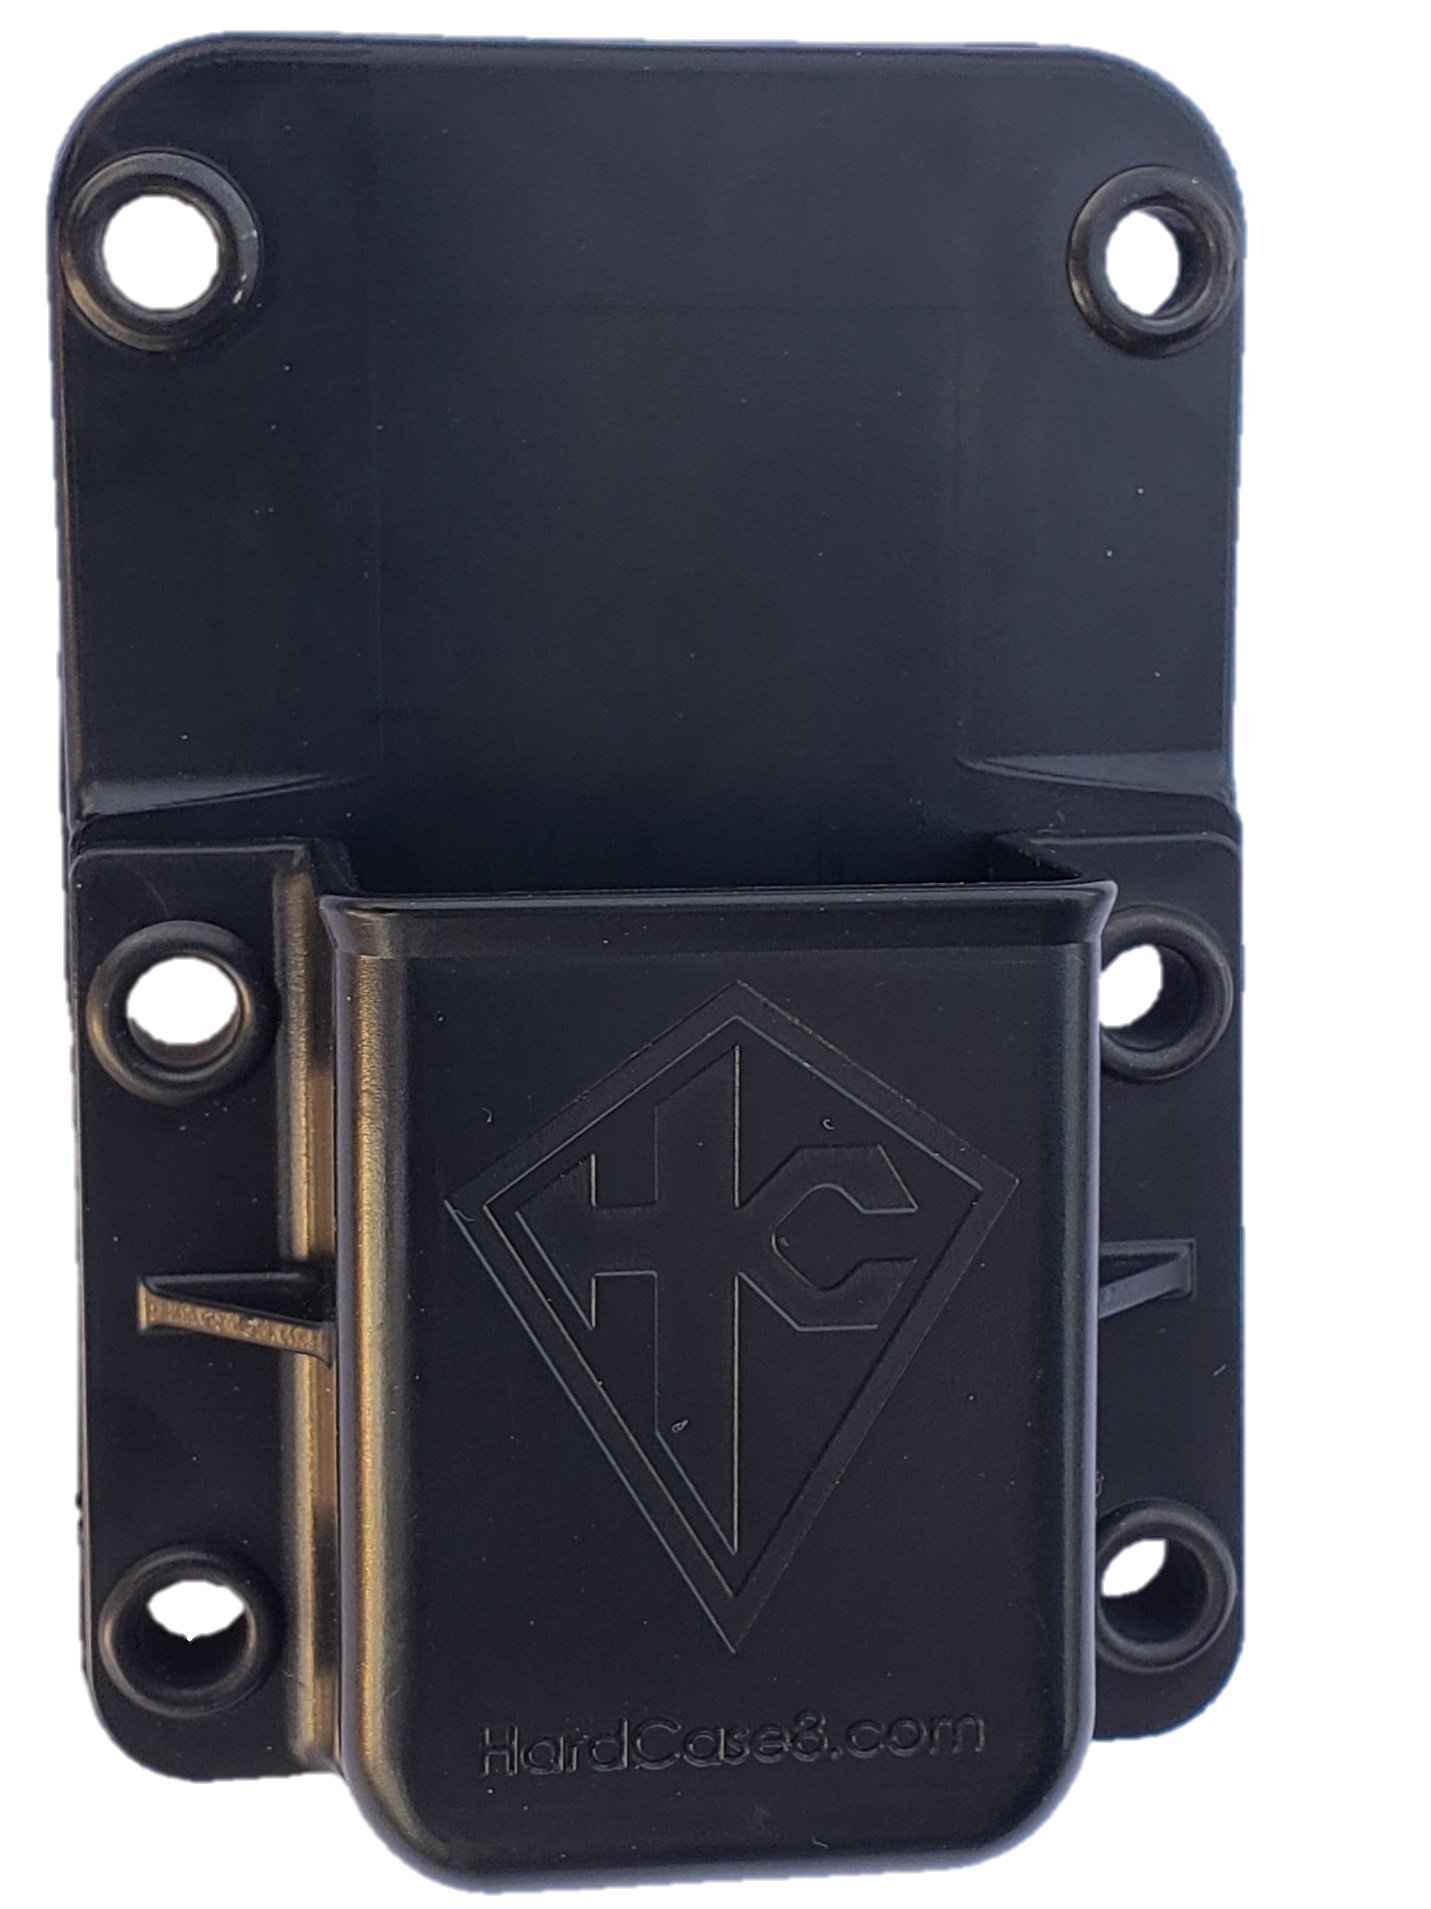 Hardcase8, Leatherman Case, Fits Wave, CHARGE TTI or REBAR. leatherman Hard case Made In USA